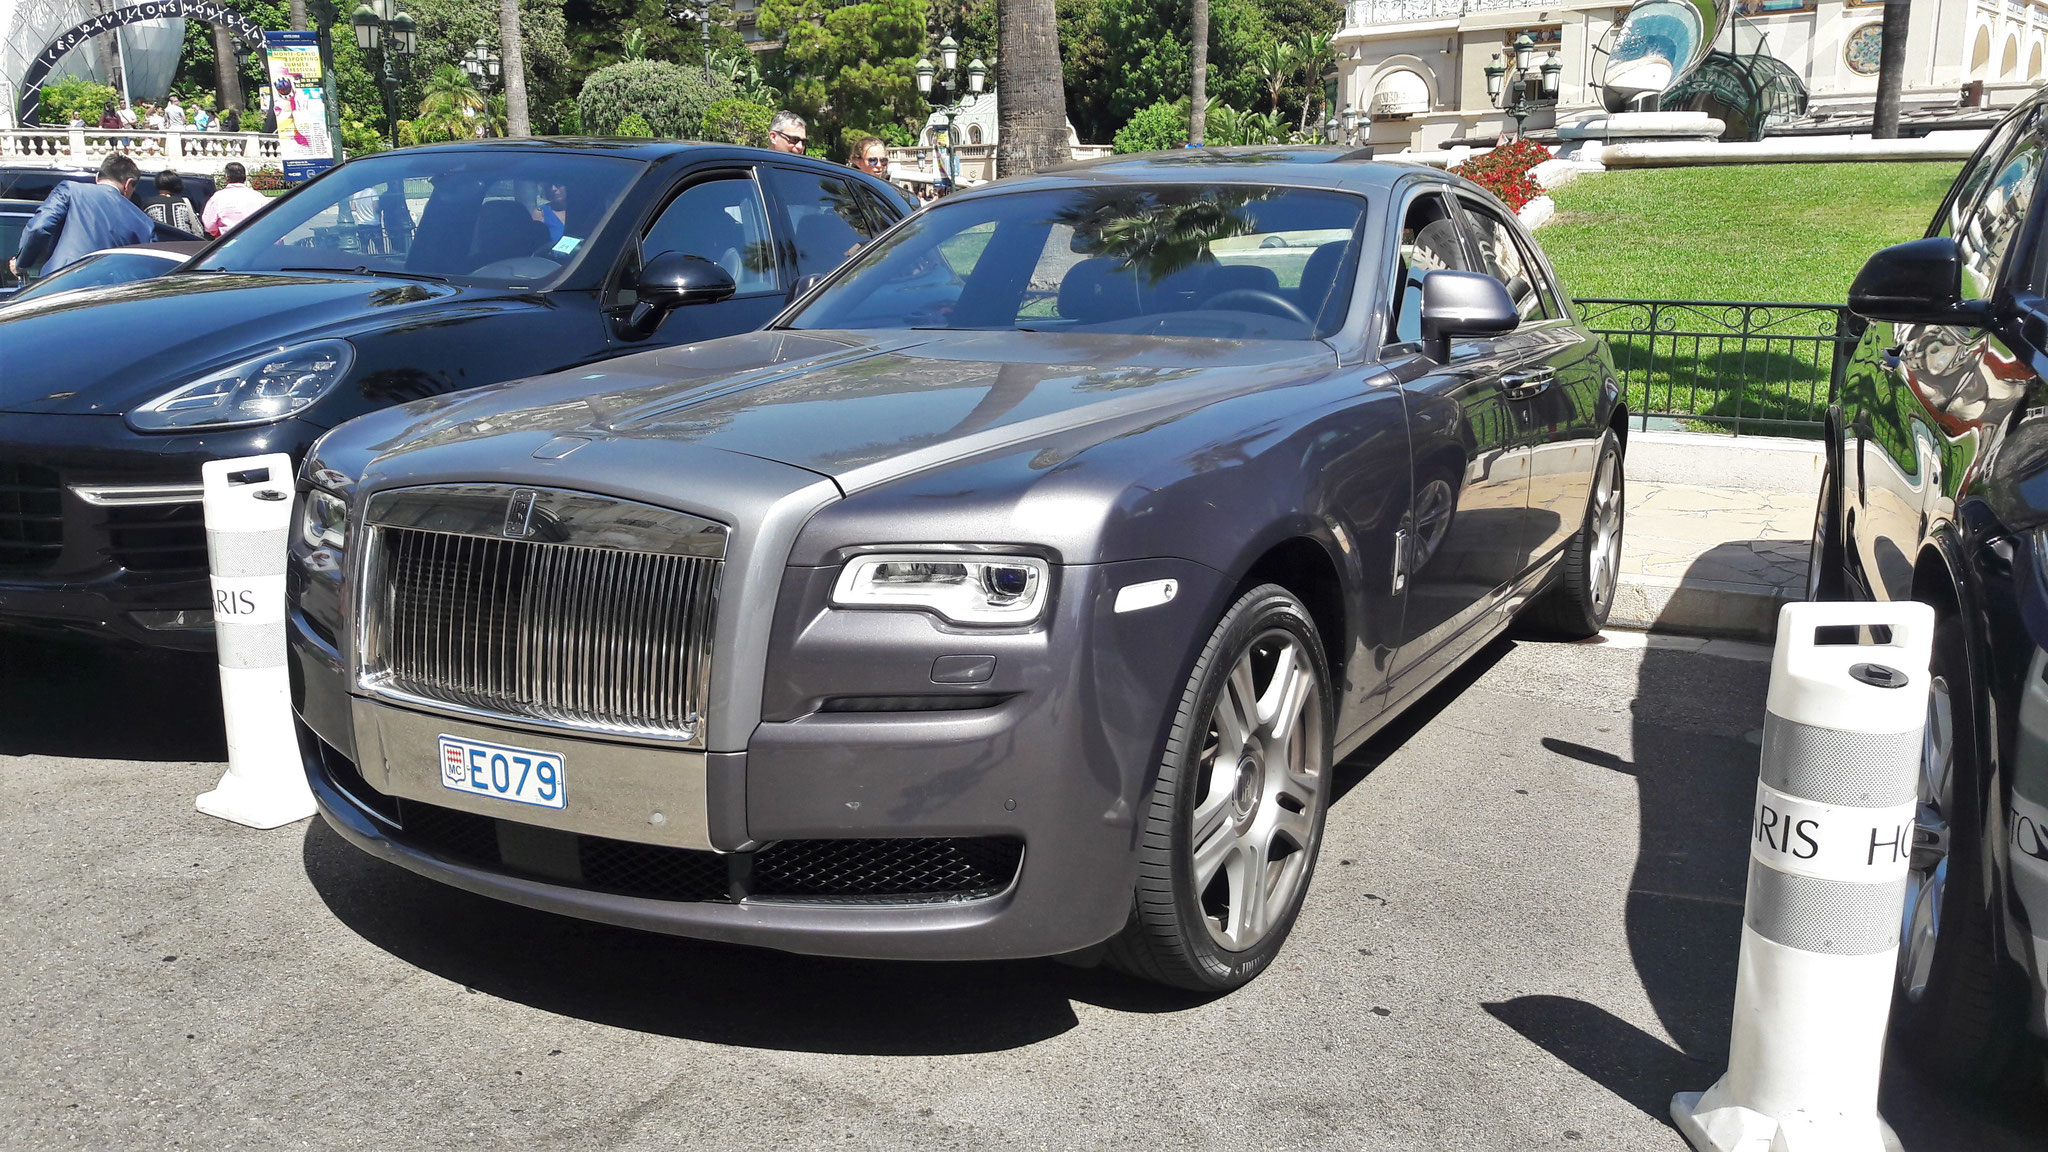 Rolls Royce Ghost Series II - E079 (MC)